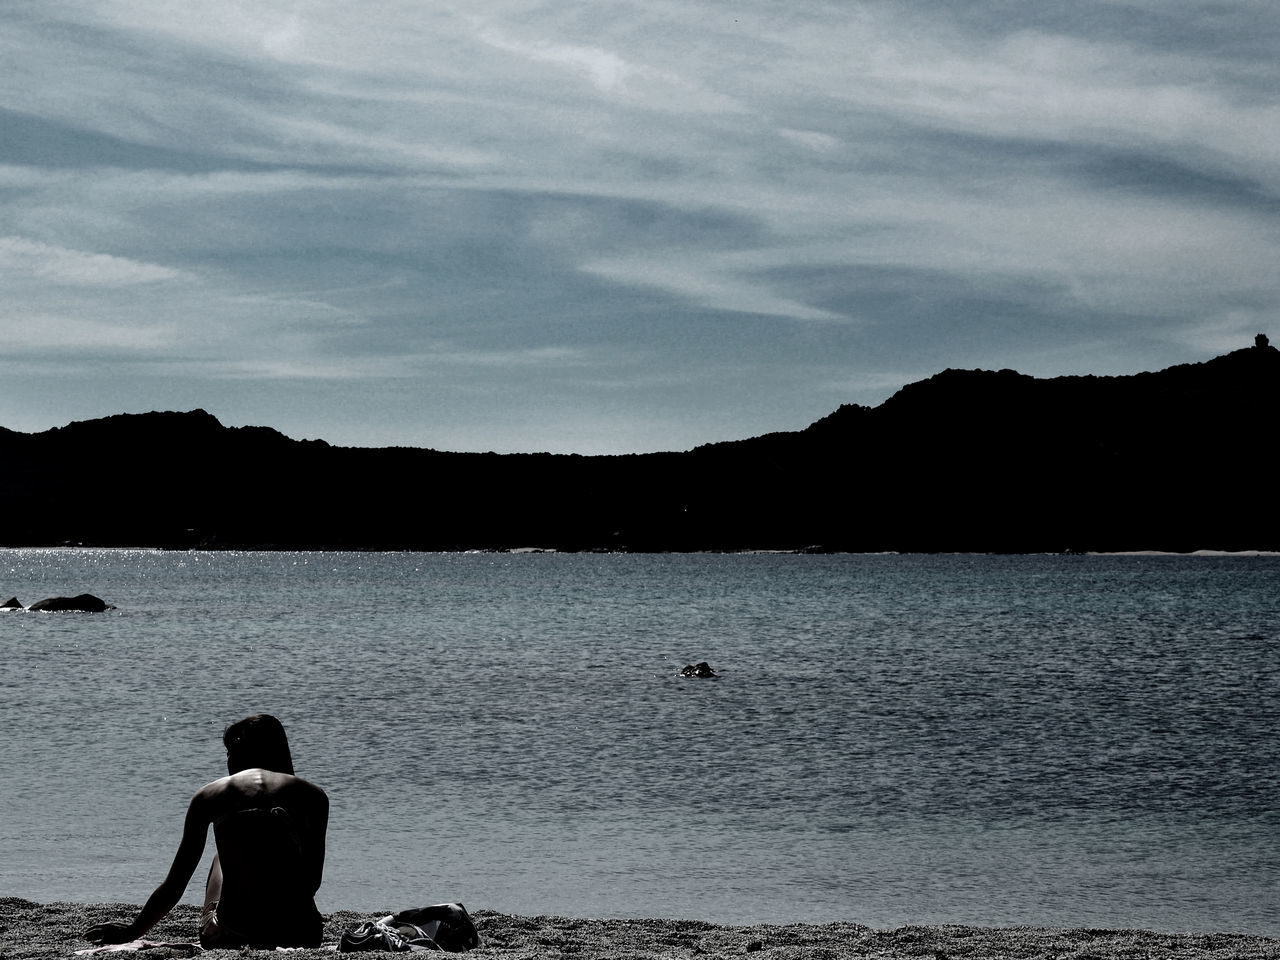 Beauty In Nature Bird Day Leisure Activity Lifestyles Men Mountain Nature Outdoors People Real People Rear View Scenics Sea Silhouette Sky Standing Swimming Tranquility Water